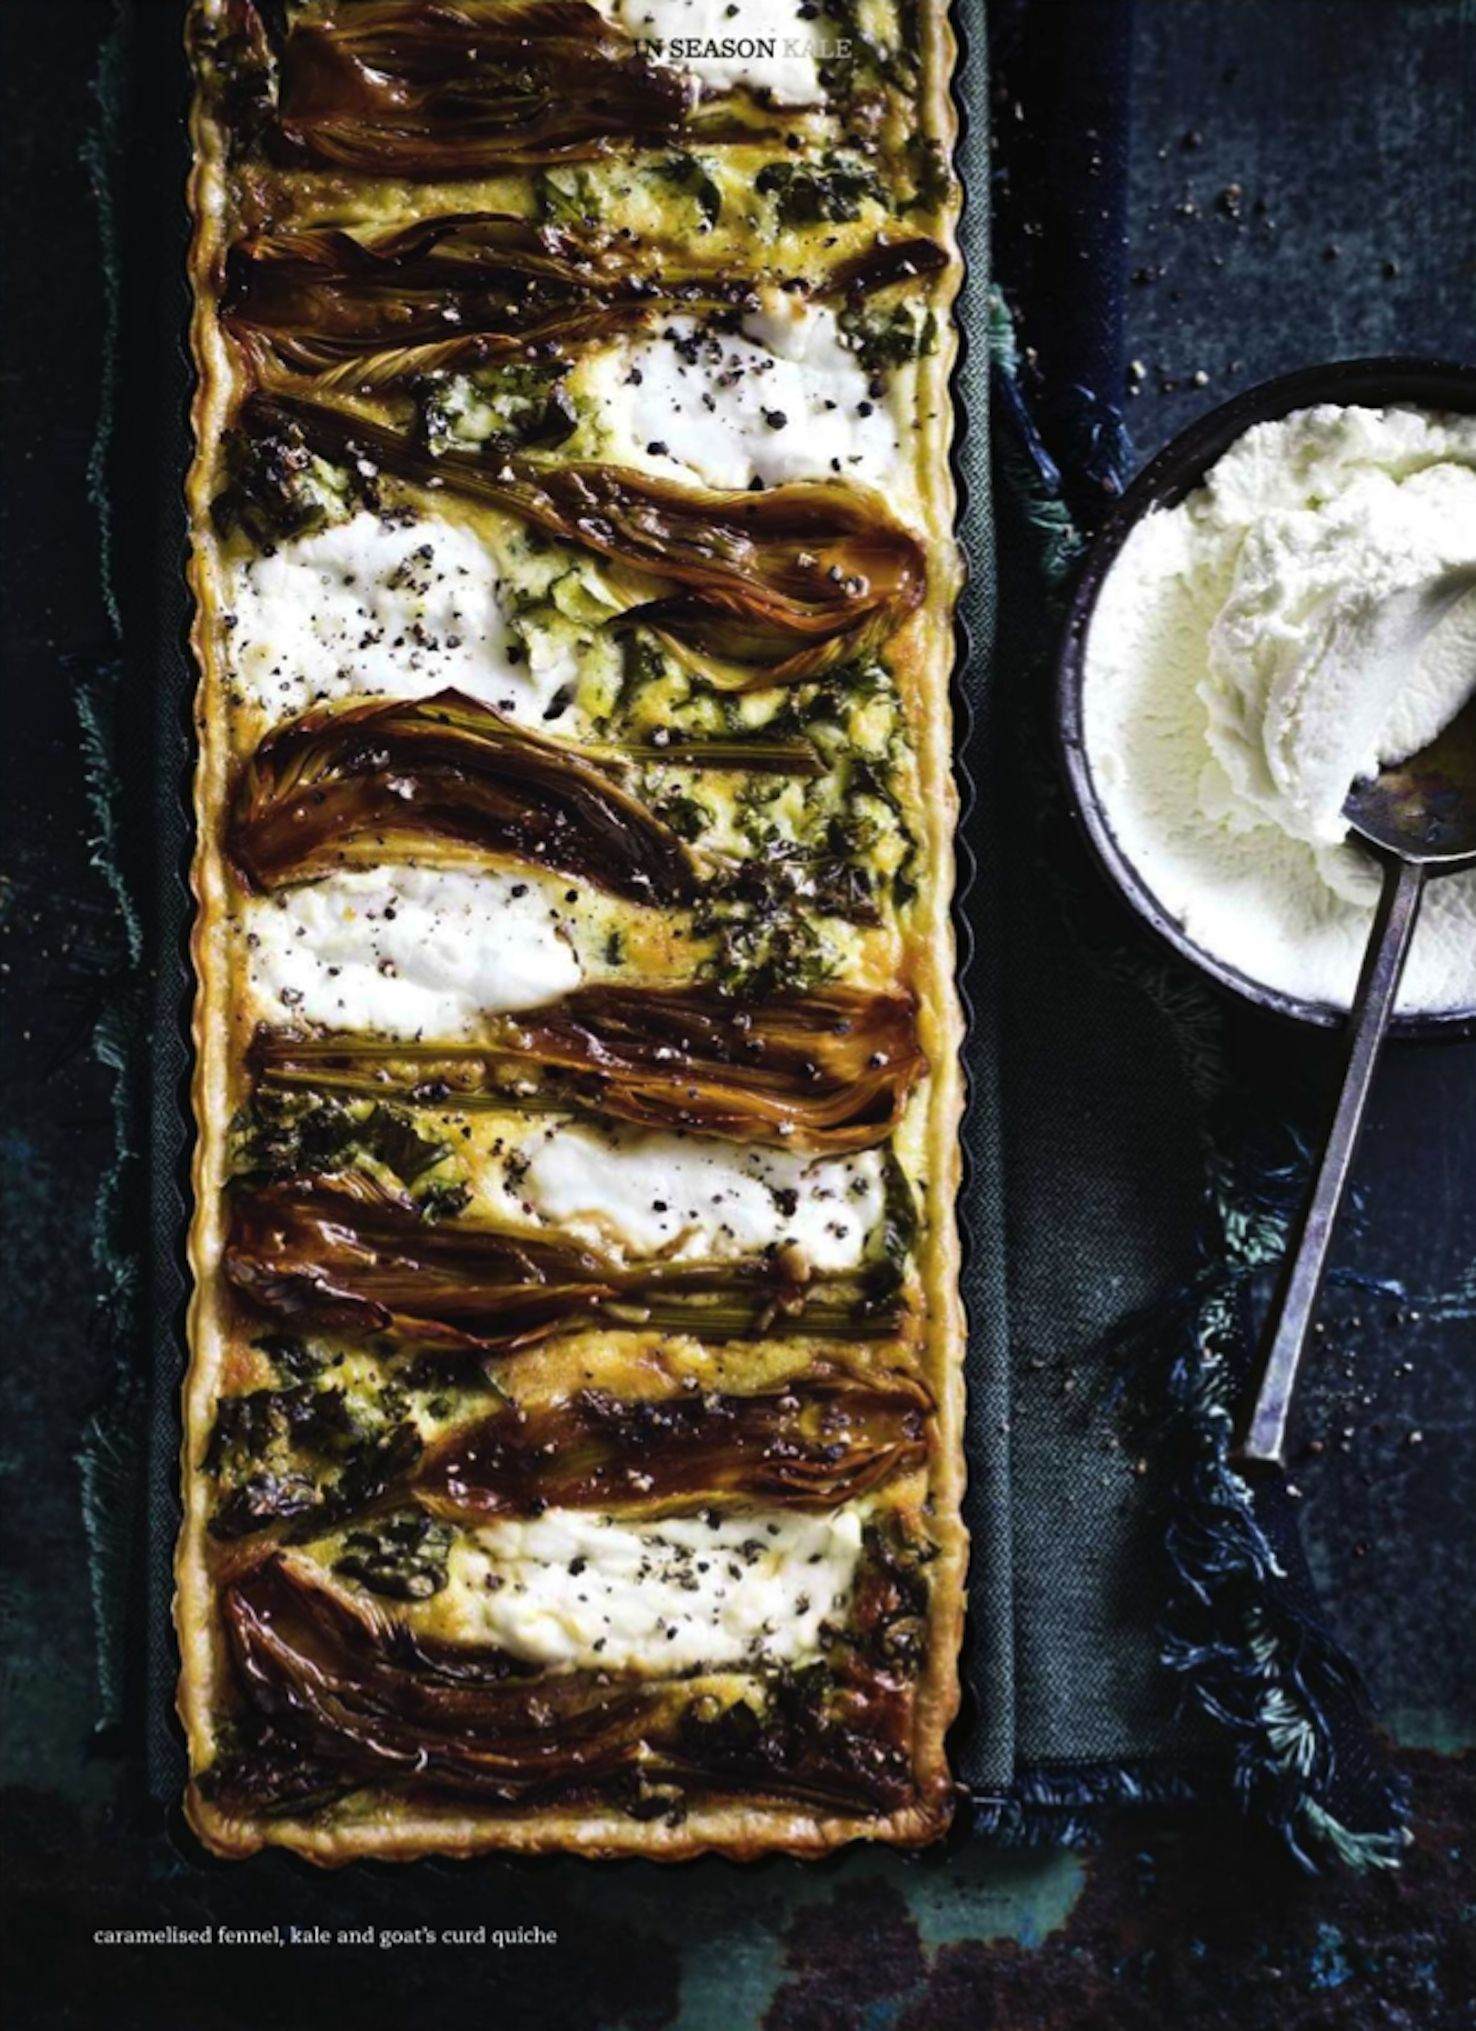 9 caramelised fennel, kale and goat's cheese quiche